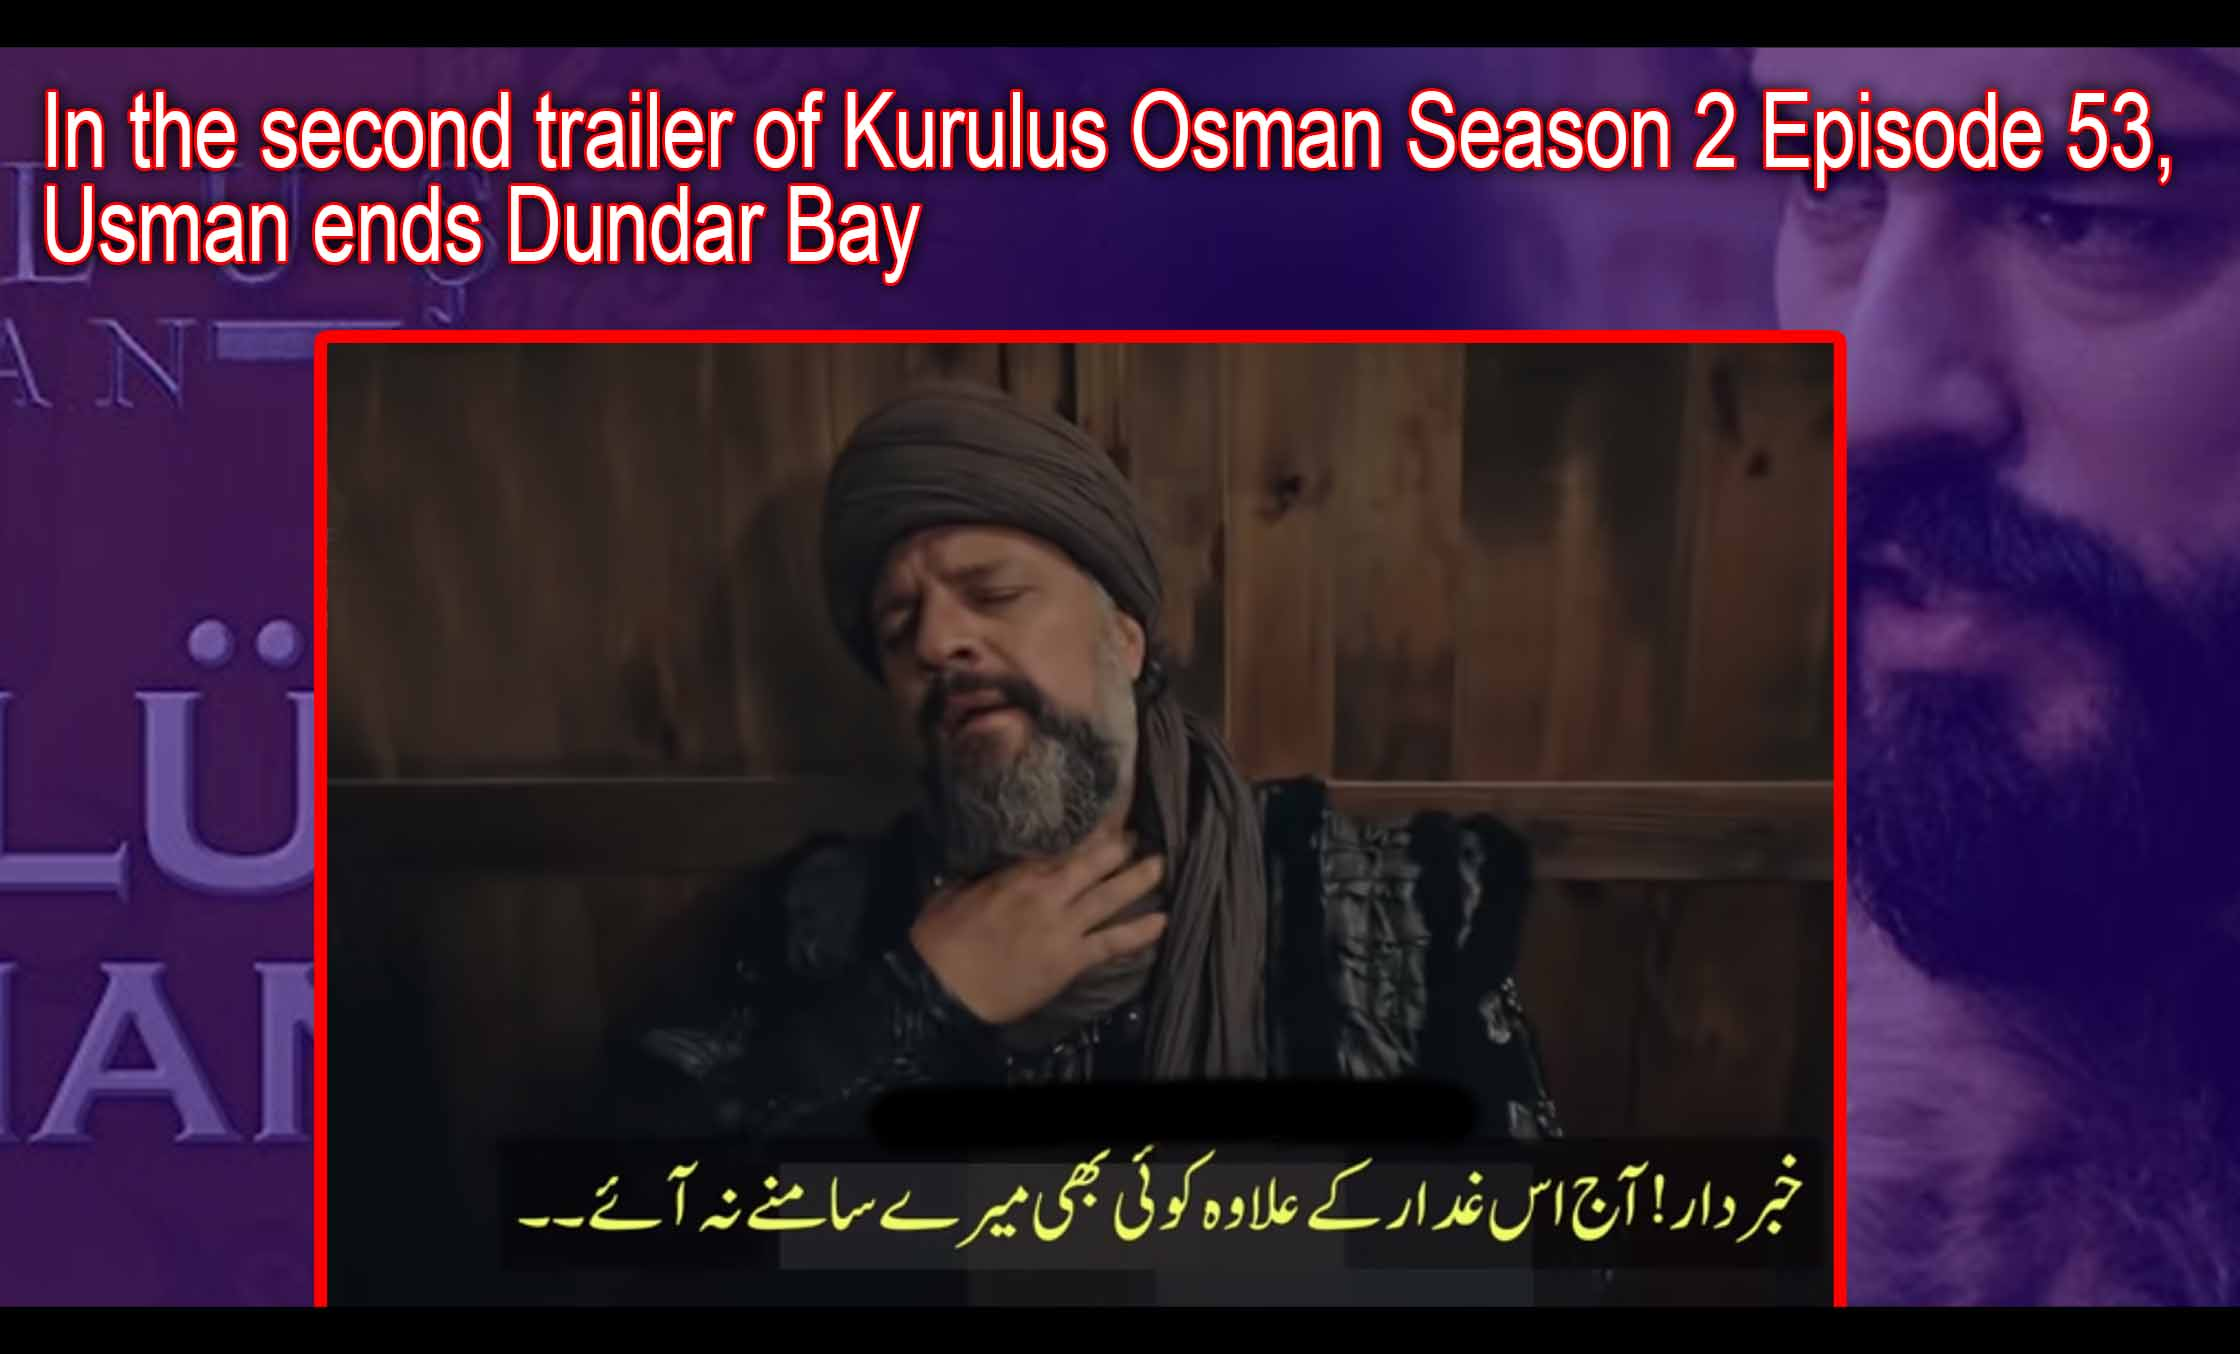 Osman Finishes Dundar Bey In the second trailer of Kurulus Osman Season 2 Episode 53